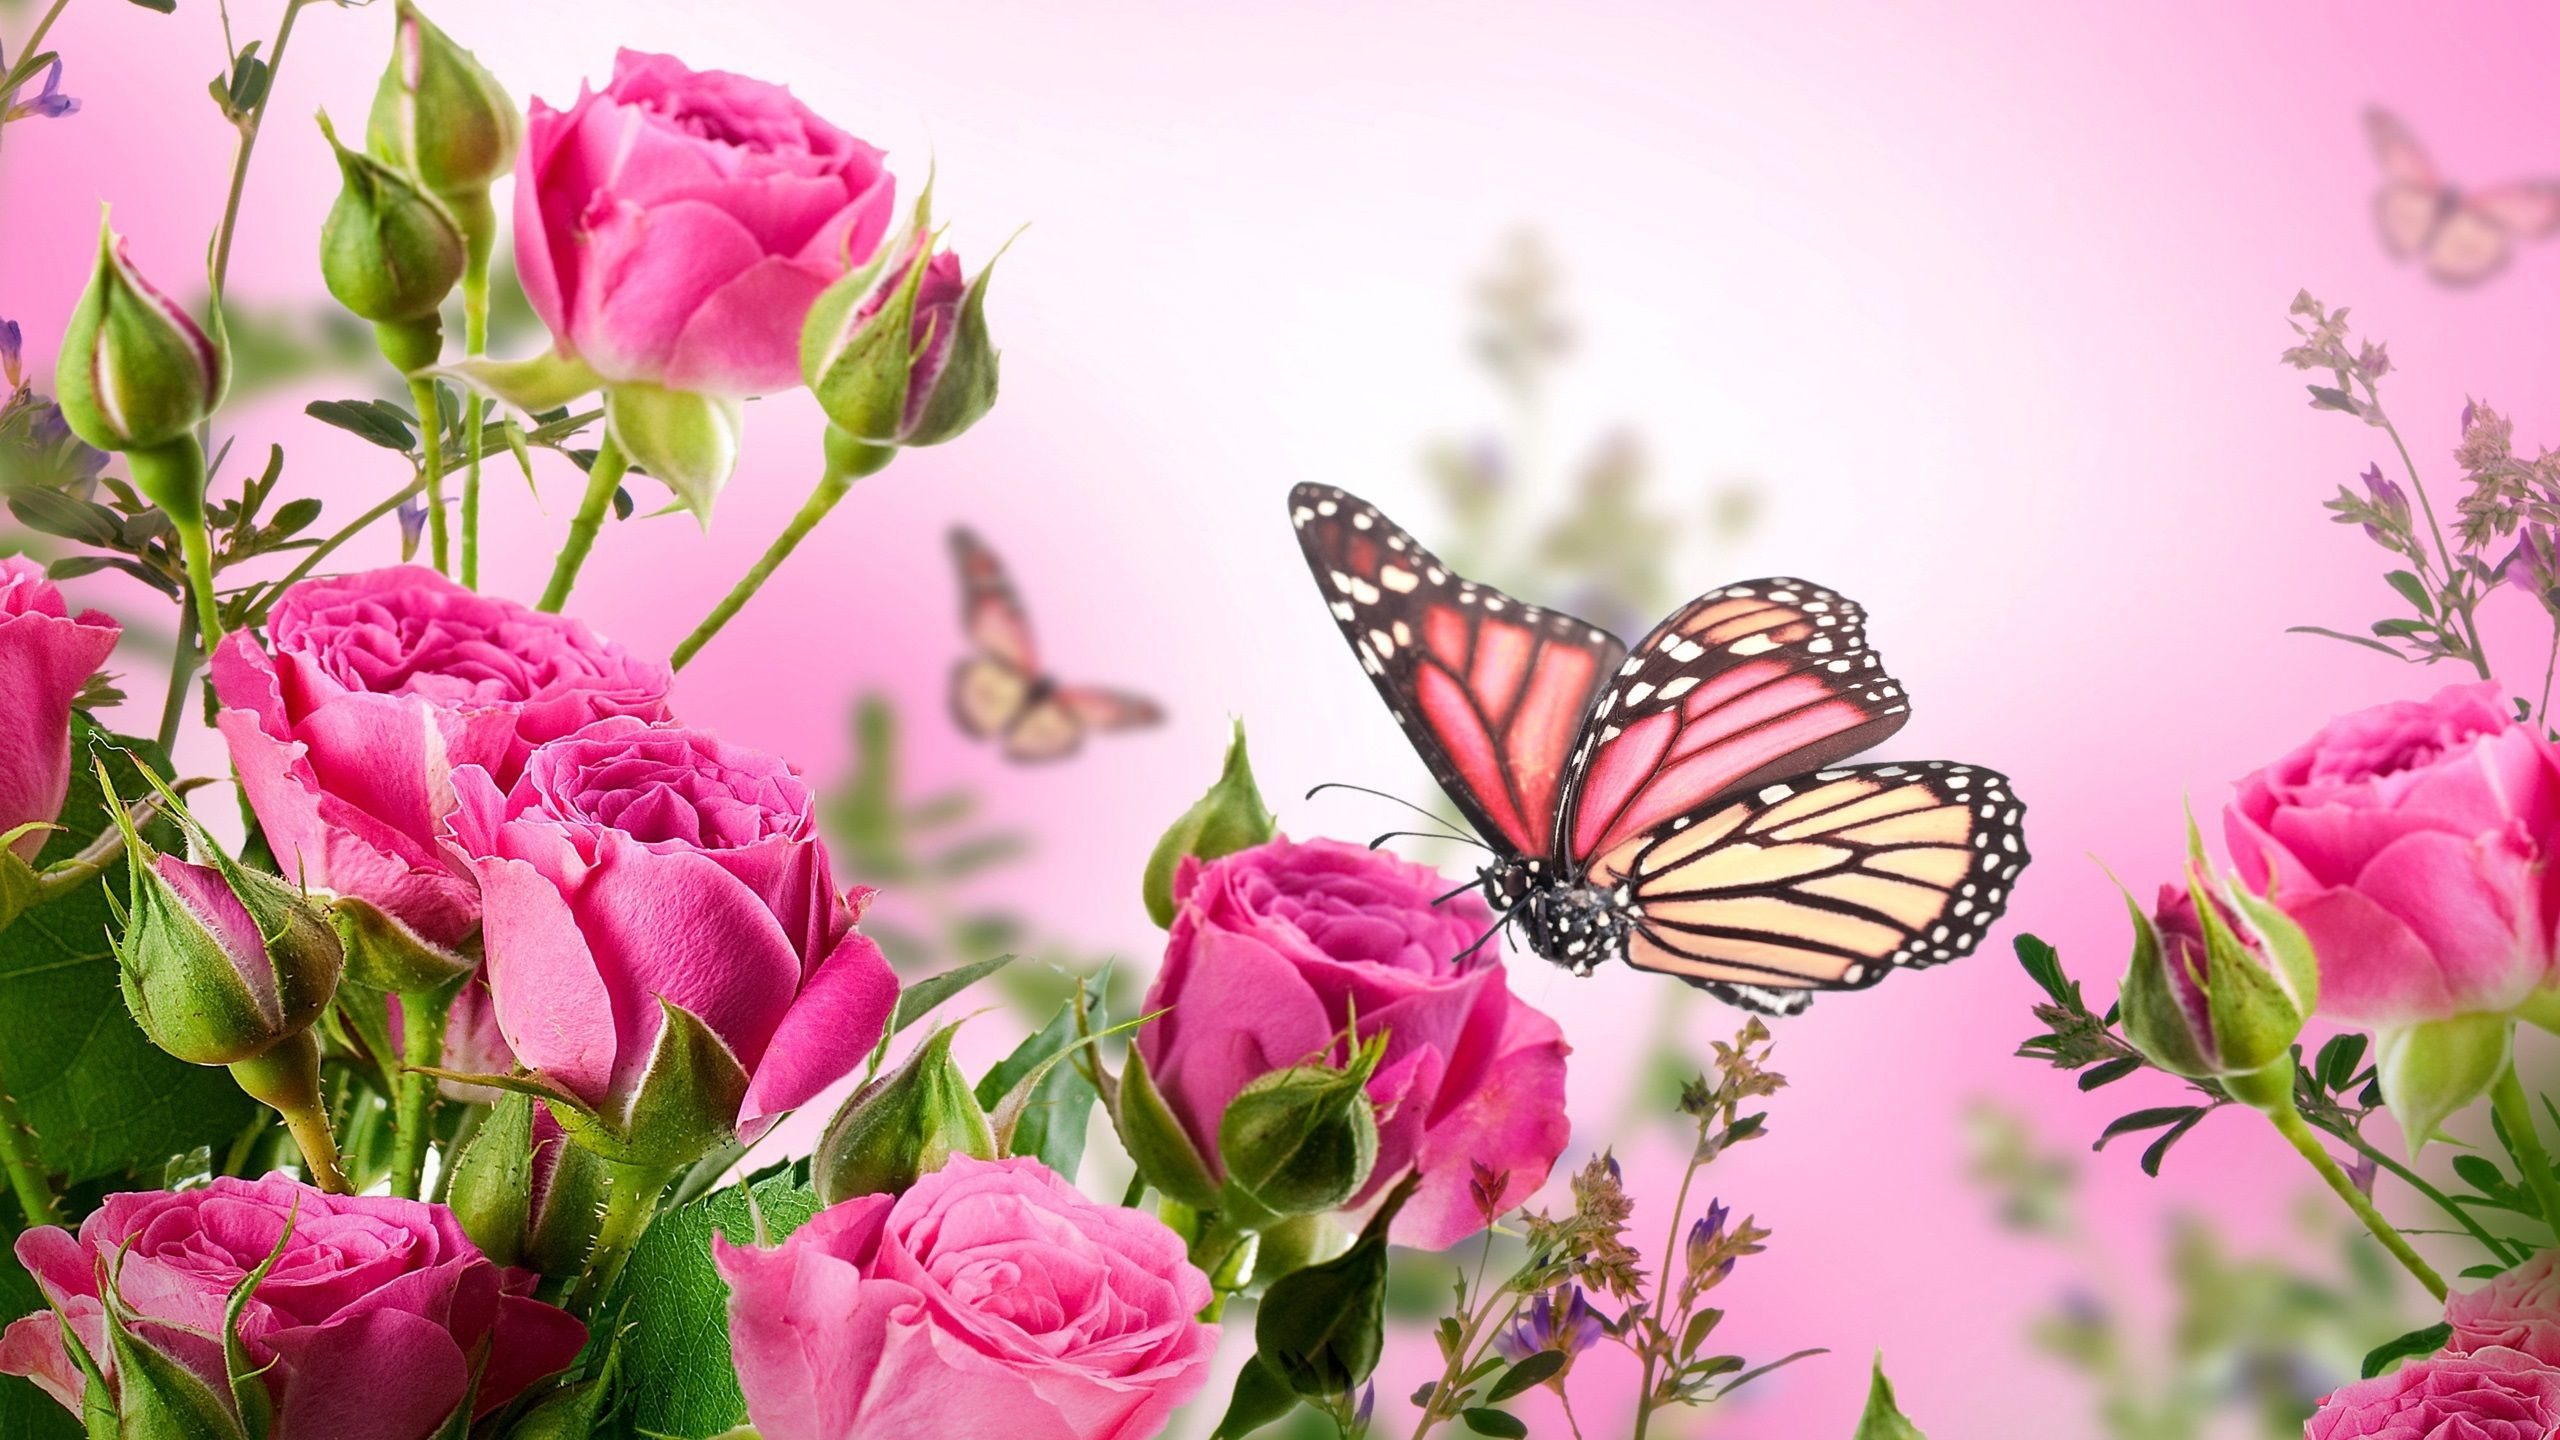 1920x1080 Nice Wallpaper Hd Of Butterfly Desktop Wallpapers 4k Windows 10 Mac Apple Colourful Images Backgrounds Free 1920A 1080 HD